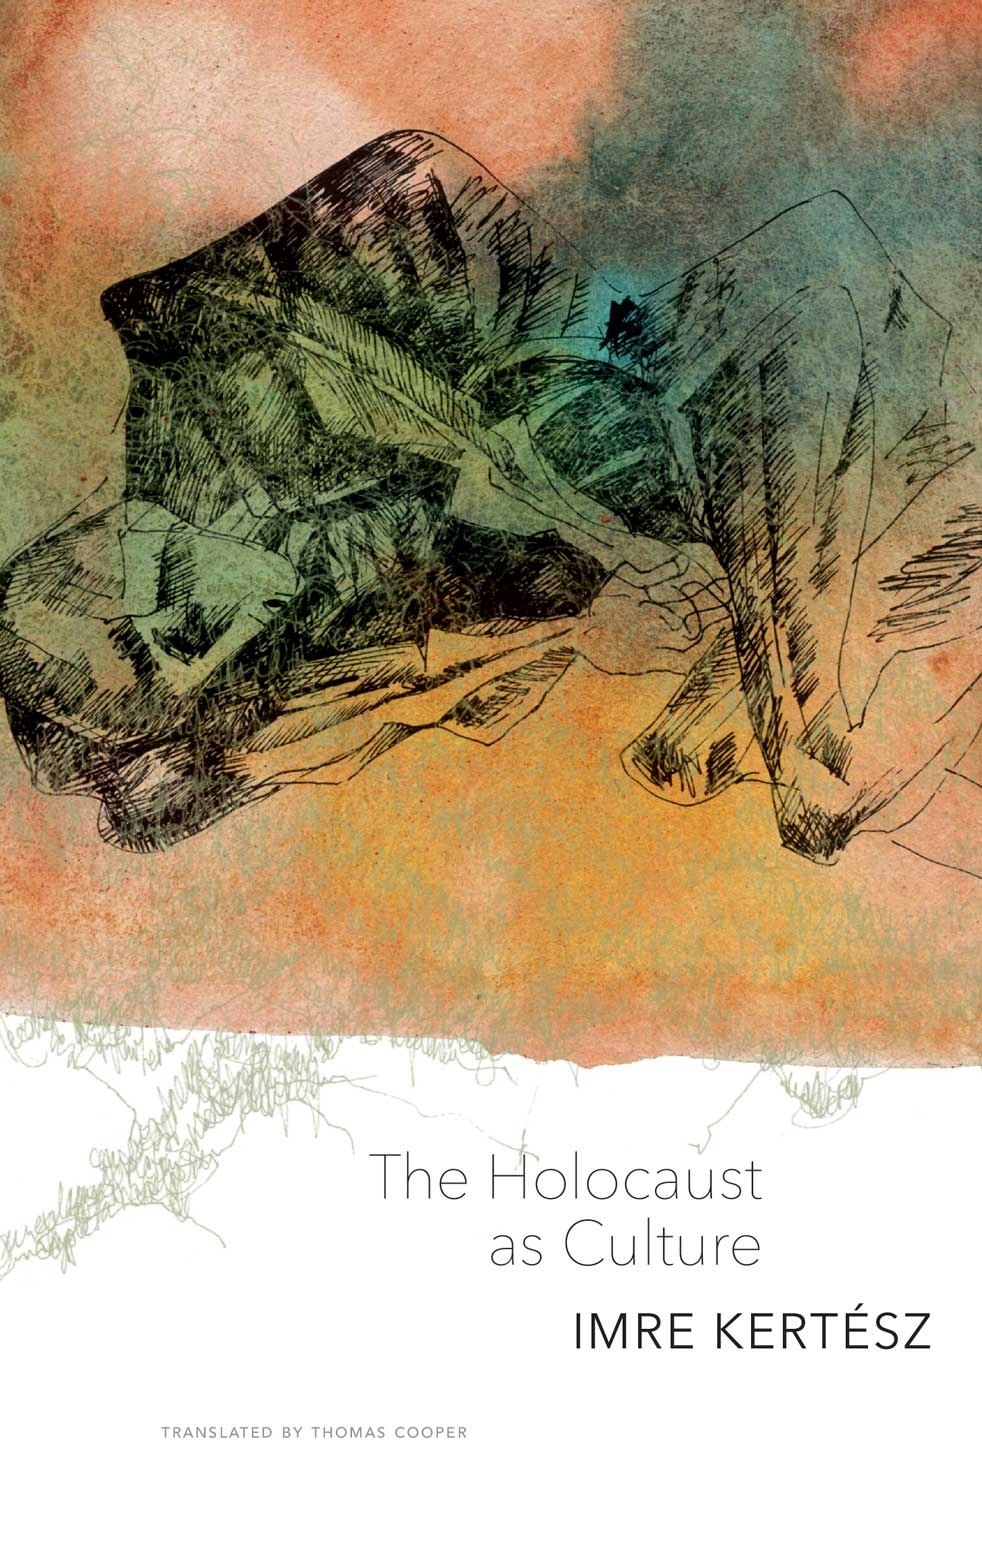 The Holocaust as Culture by IMRE KERTÉSZ |  Seagull Books